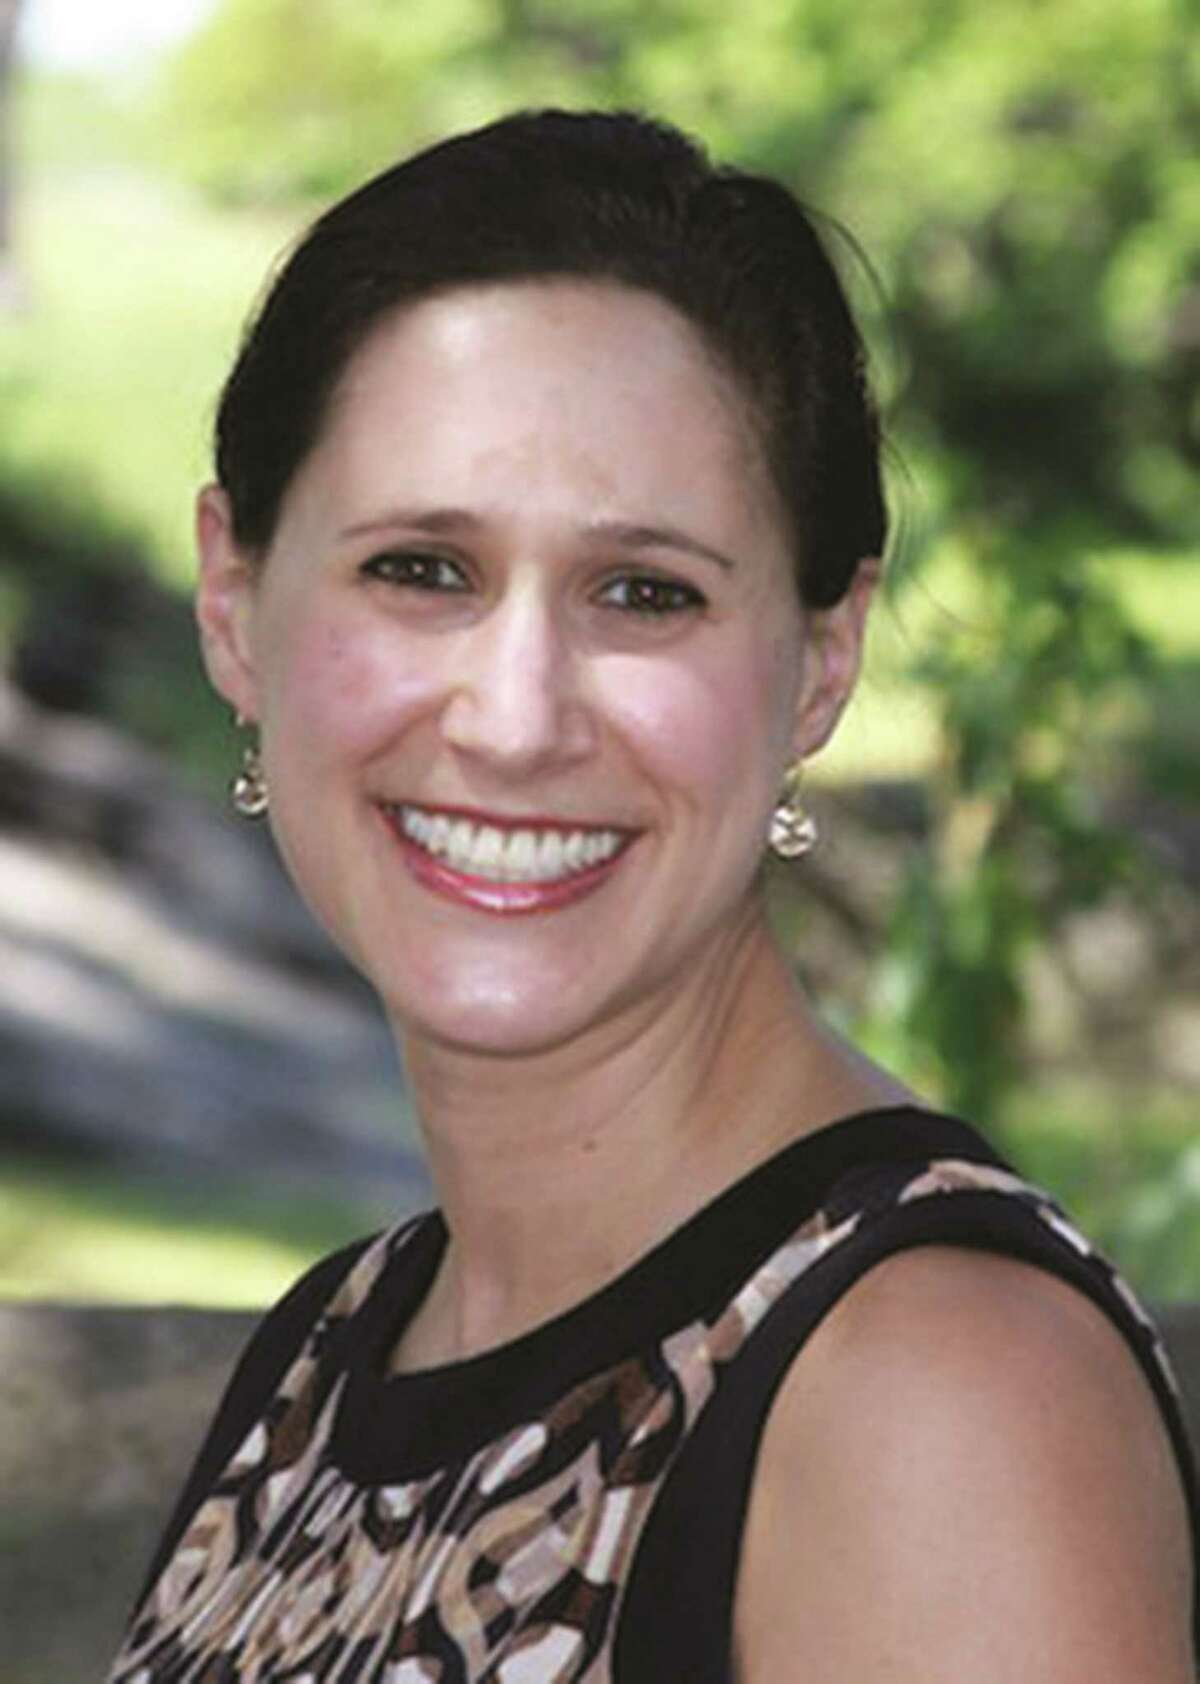 Lindsay Goldman is Deputy Director of Healthy Aging at the NY Academy of Medicine (NYAM) and is the Project Director for Age-friendly NYC will speak at SilverSource Inc.'s annual breakfast Oct. 27 at the Italian Center of Stamford. Tickets are $75.